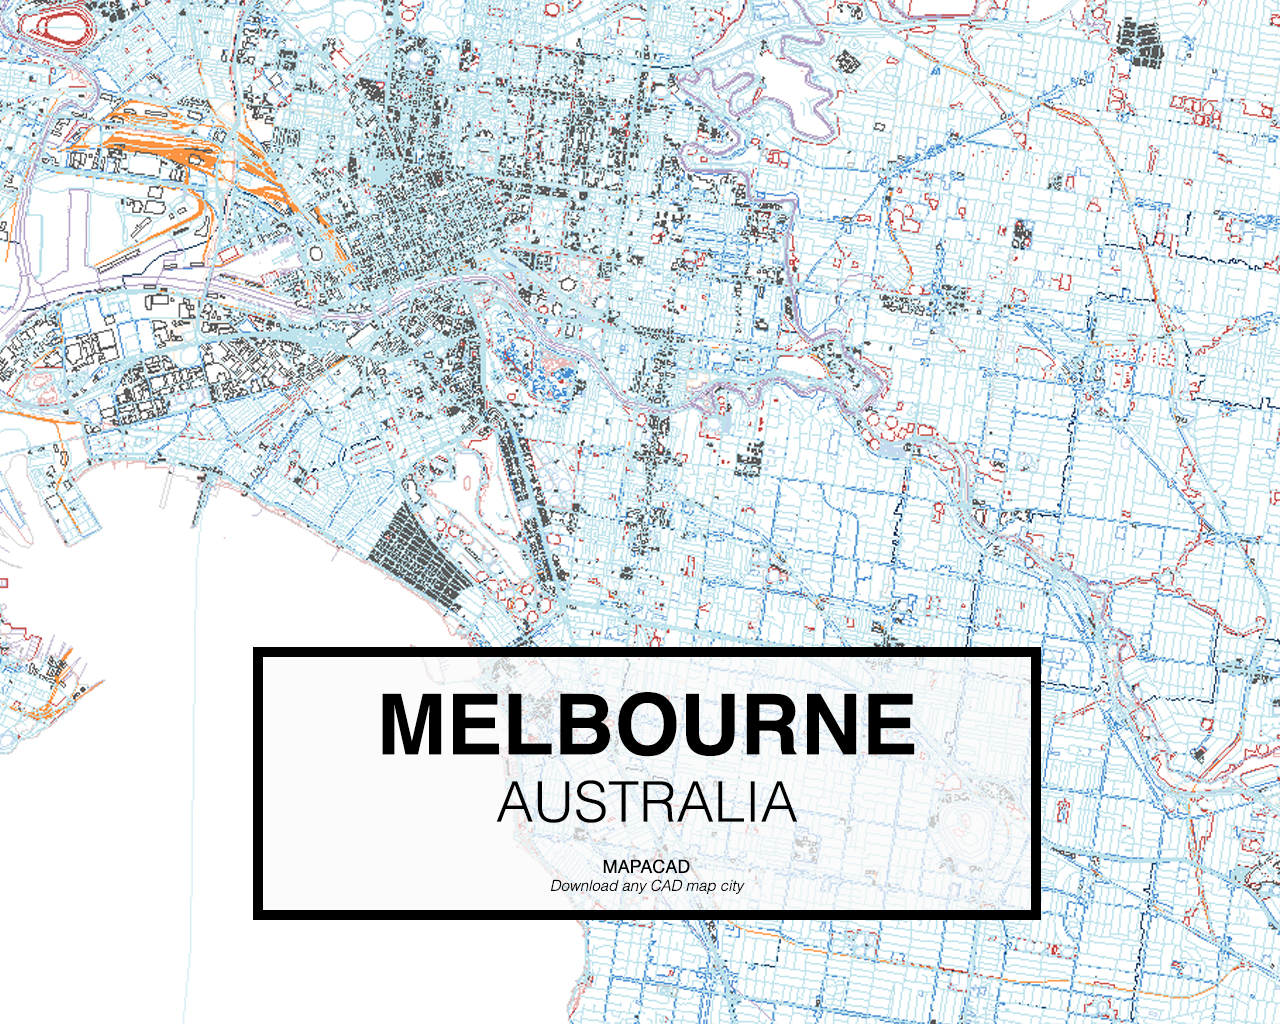 Download melbourne dwg mapacad melbourne australia 02 mapacad download map cad dwg gumiabroncs Choice Image